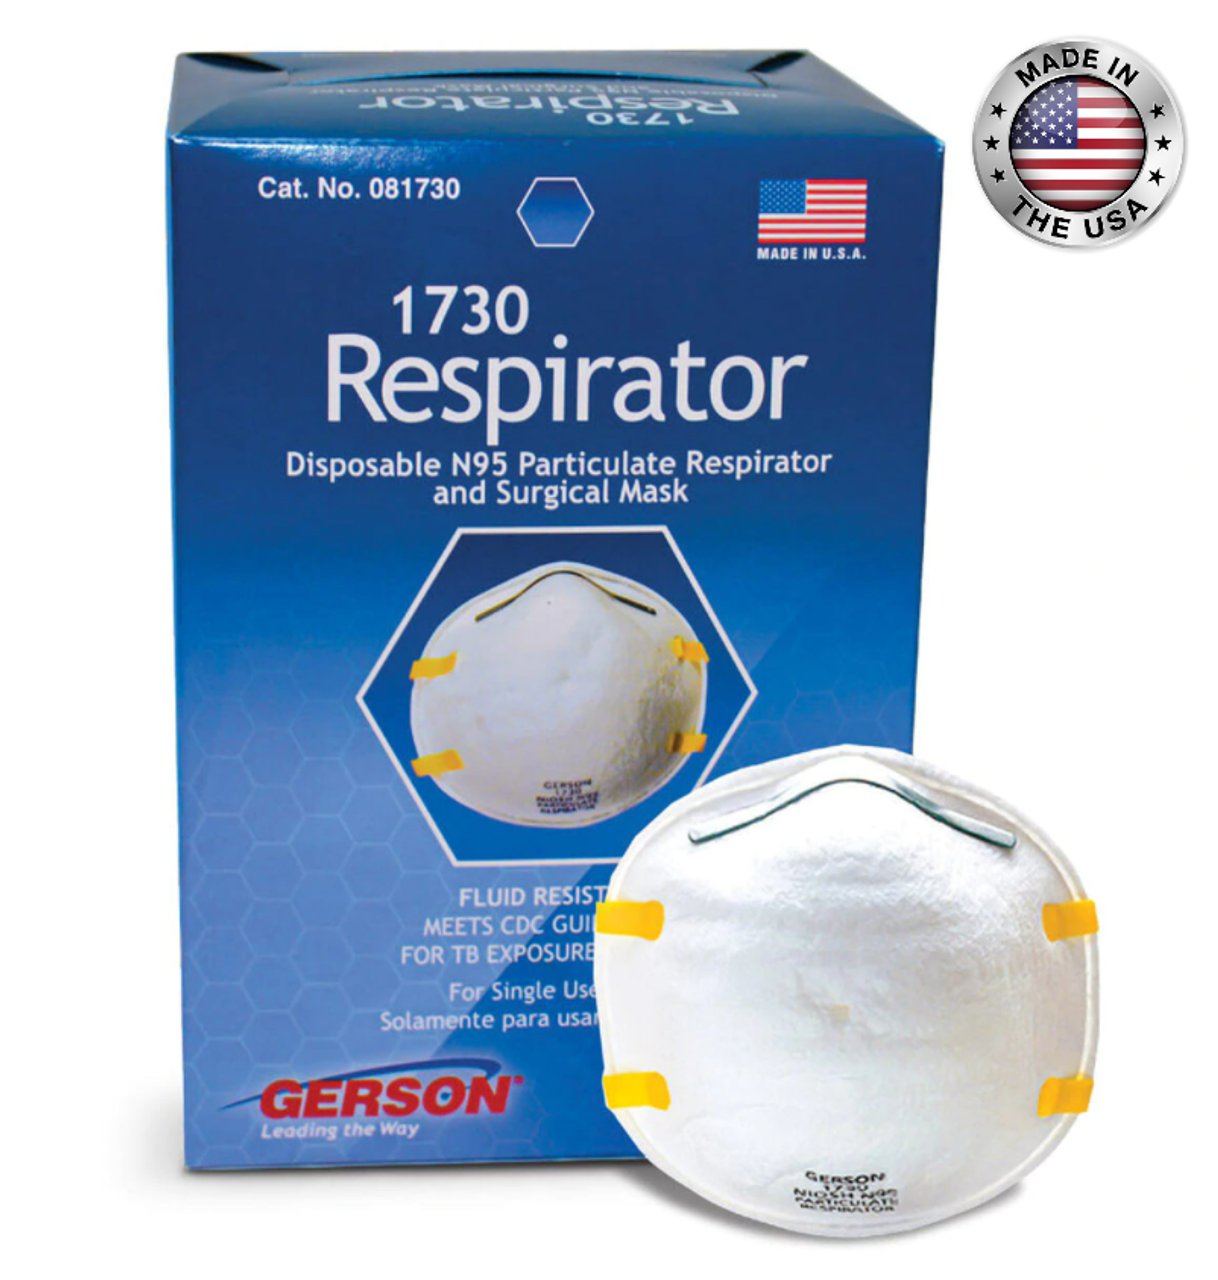 (Made in USA) Gerson 1730 N95 Particulate Respirator Mask( FDA cleared)- 20/Box